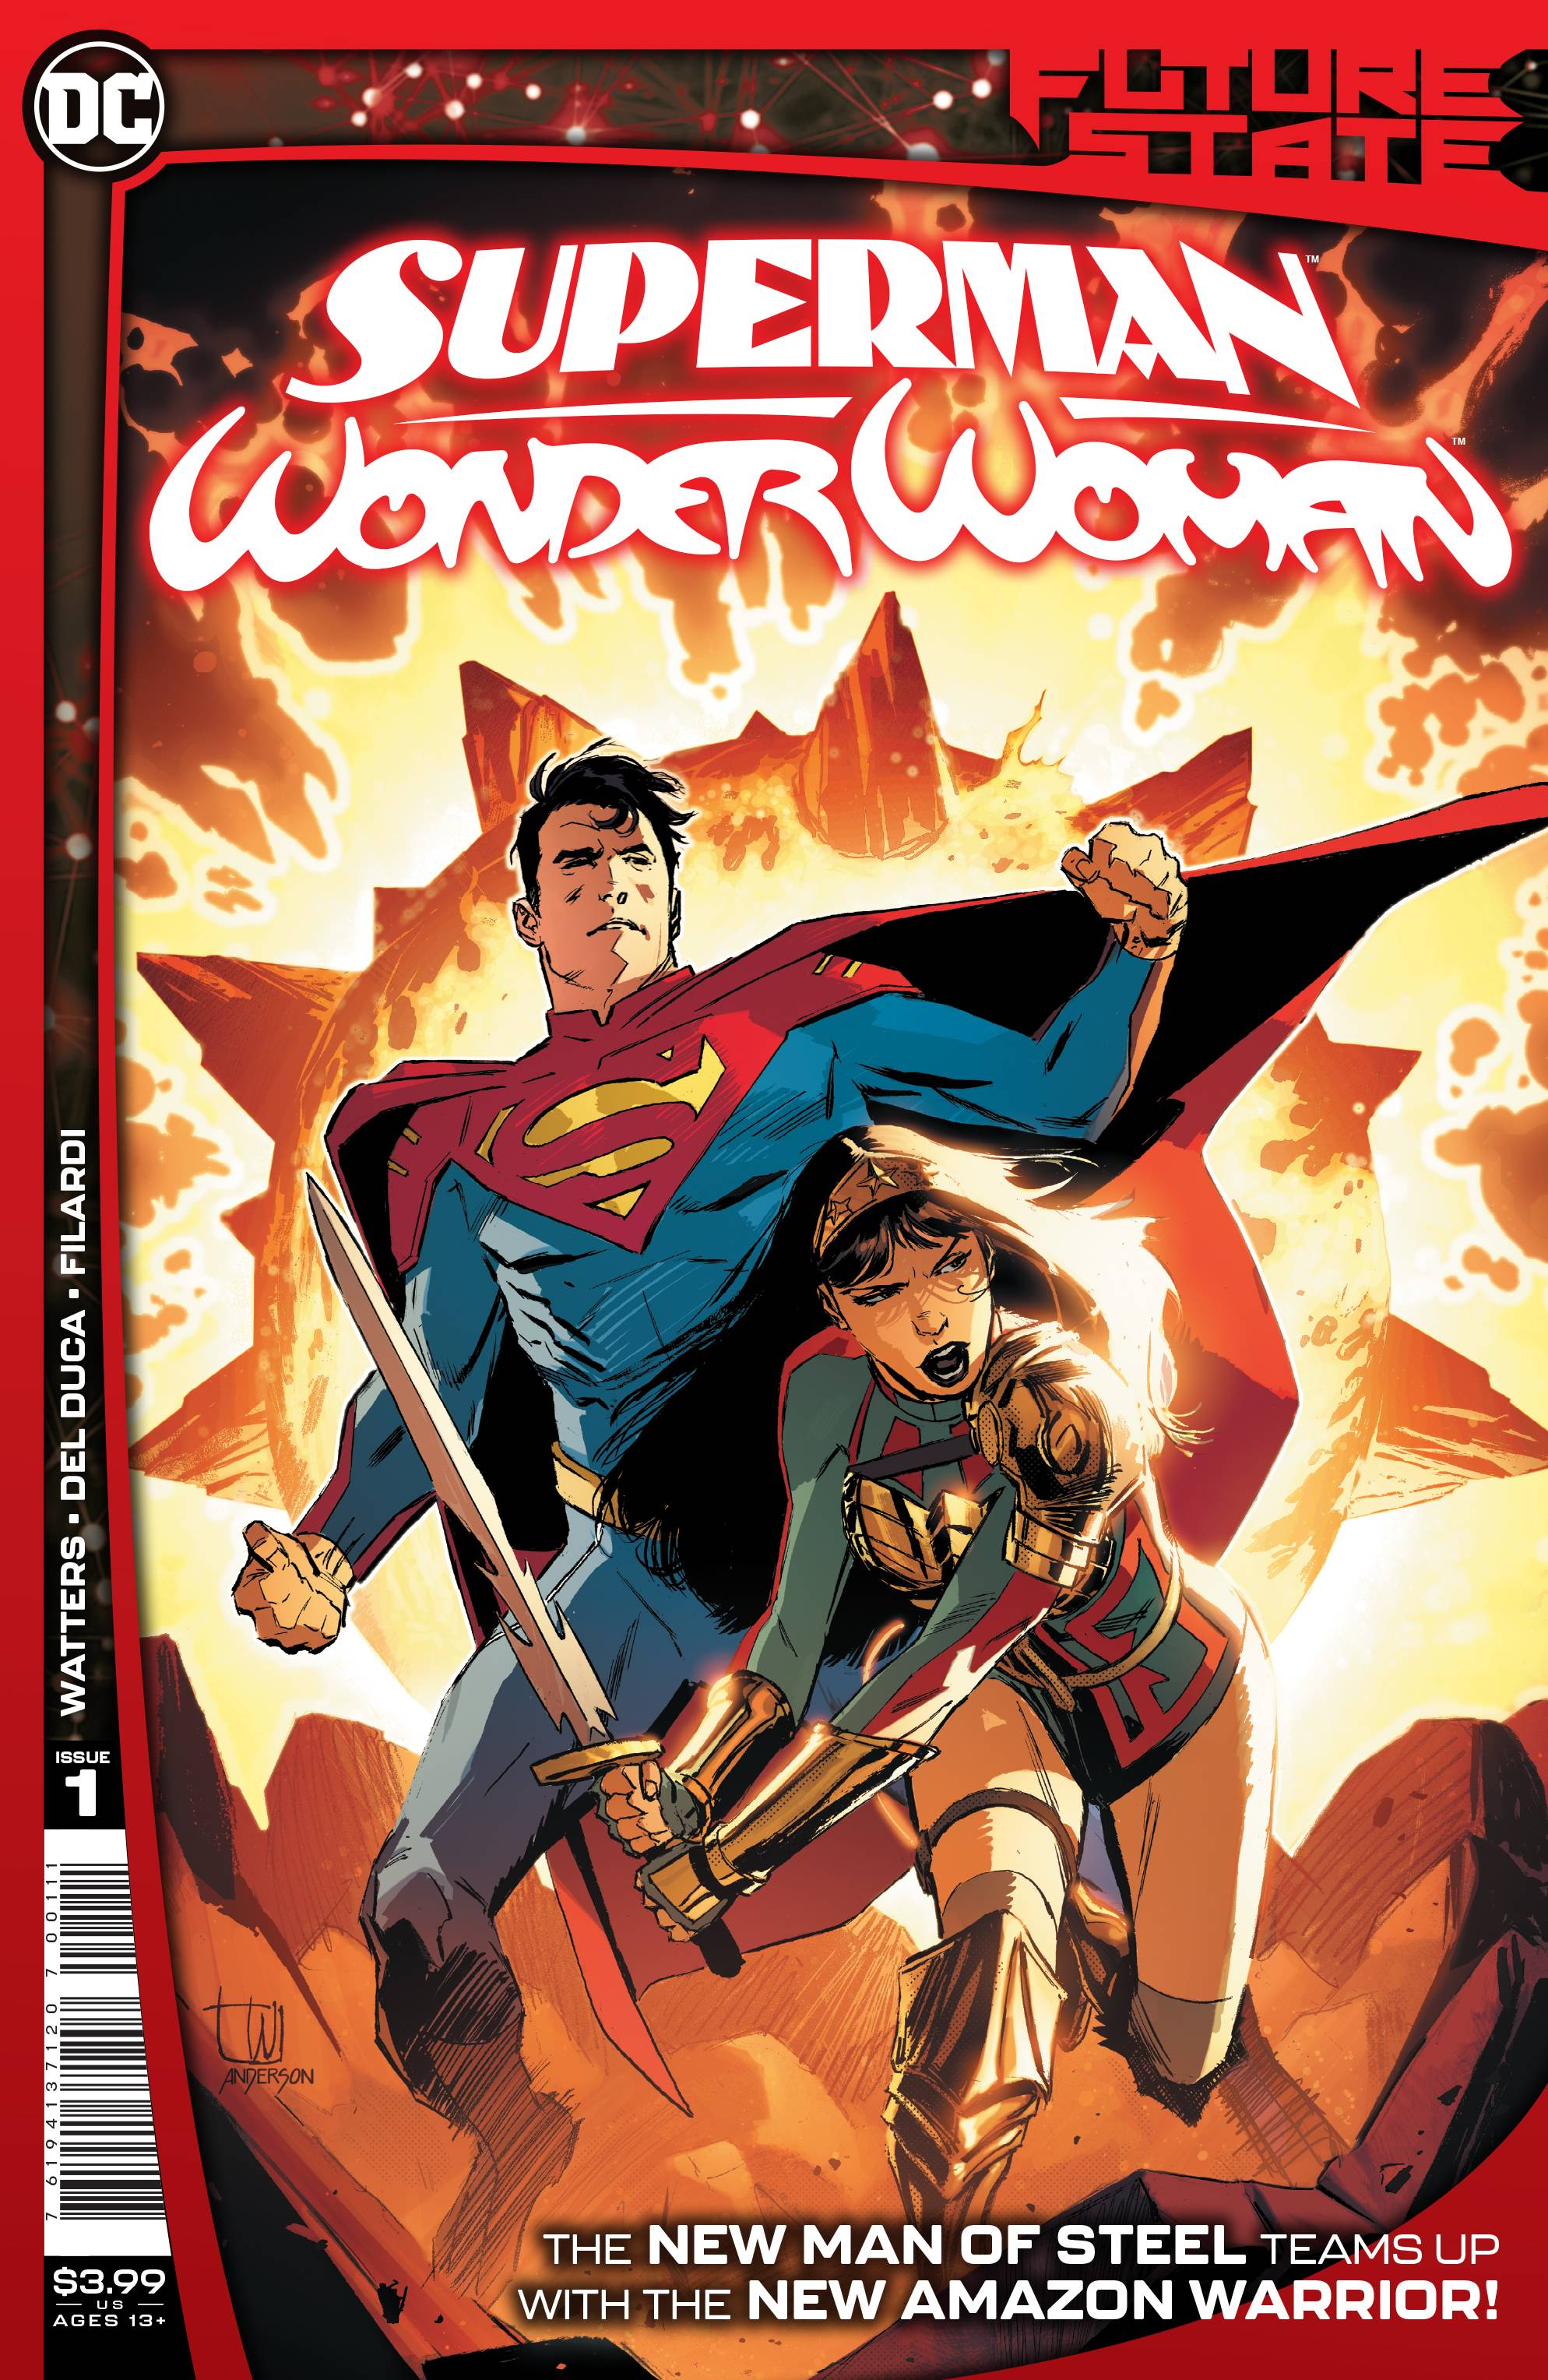 FUTURE STATE SUPERMAN WONDER WOMAN #1